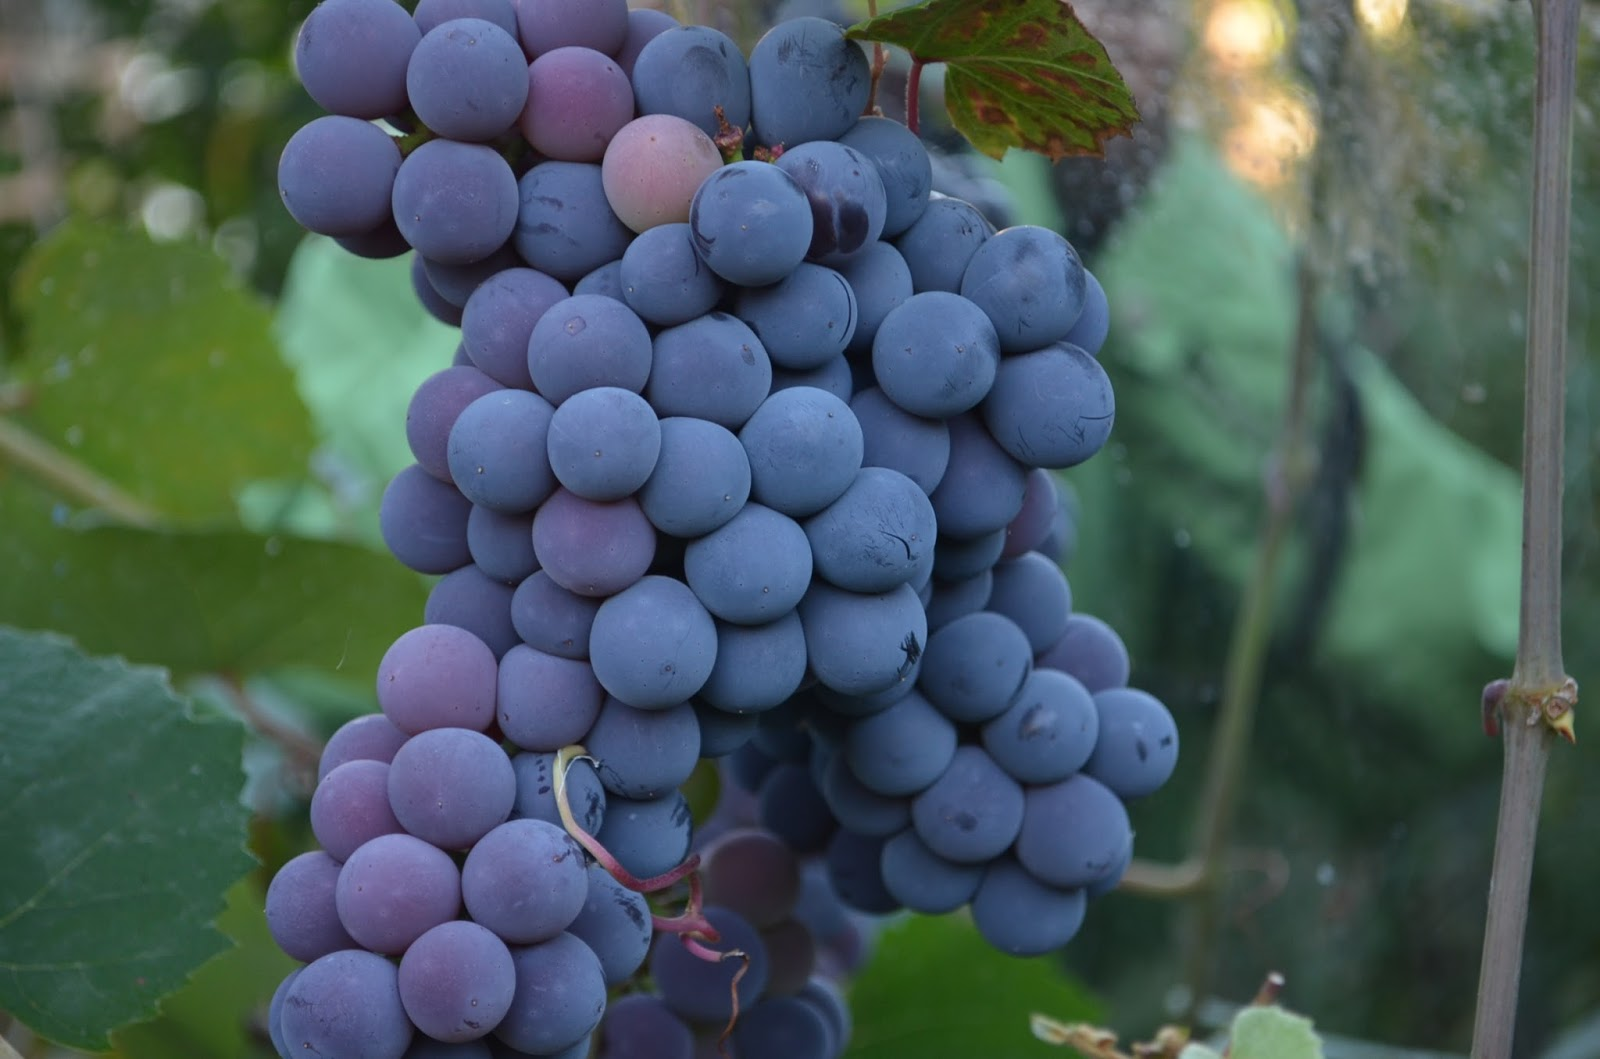 motherkerala.com: How to grow grapes in your backyard?